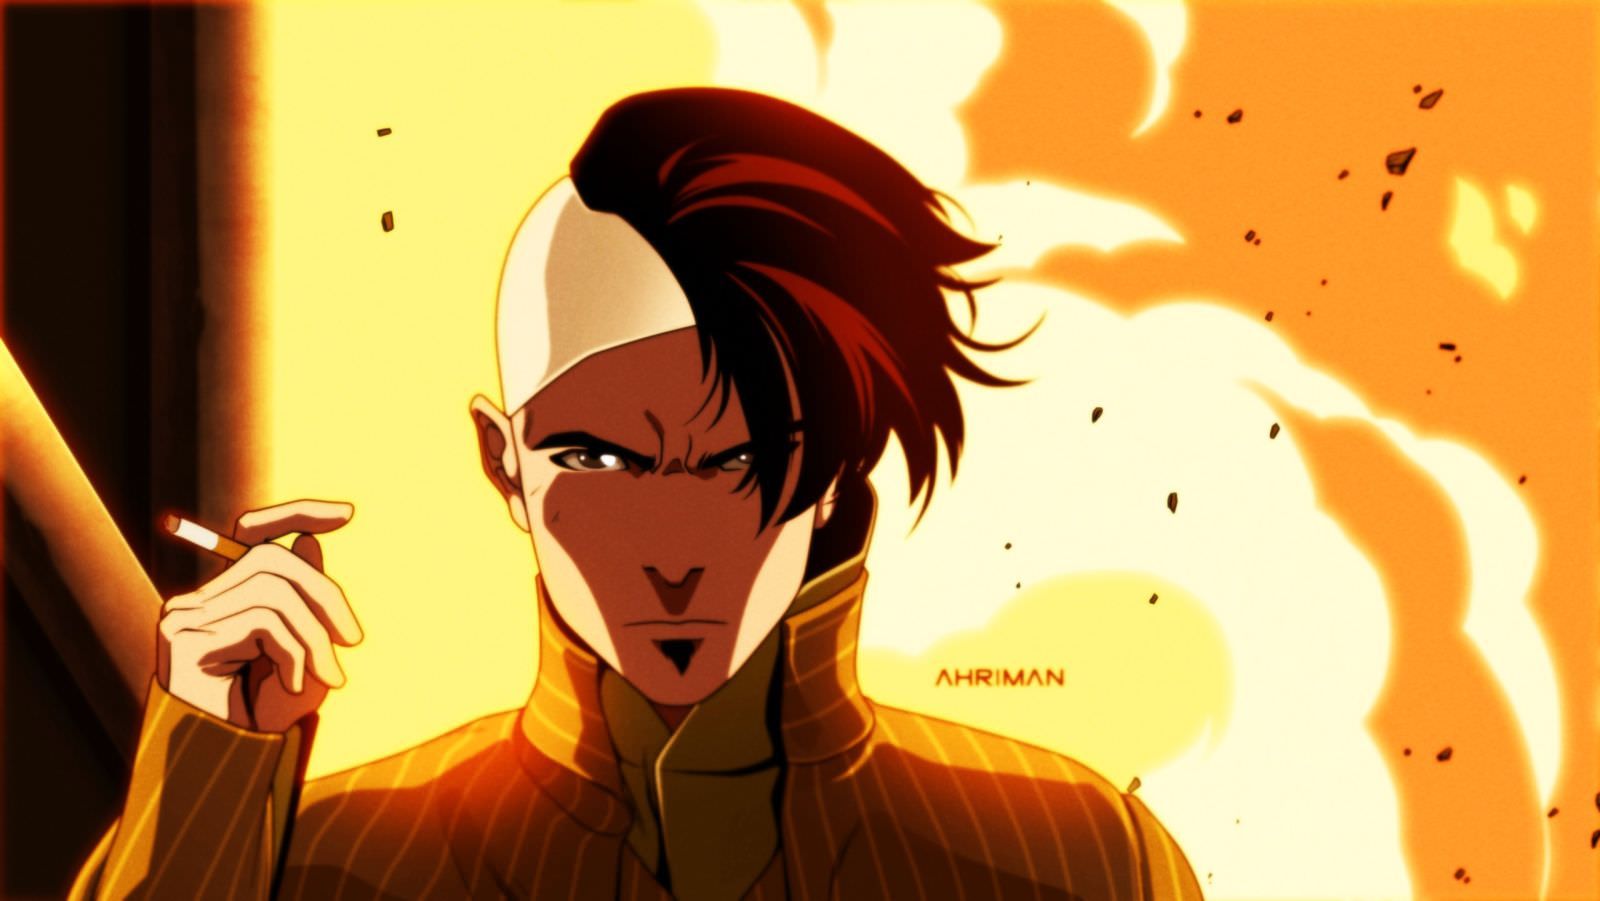 Ahriman FIFTH ELEMENT 1 - Must-See Art: Ahriman Turns Classic Flicks Into Anime!